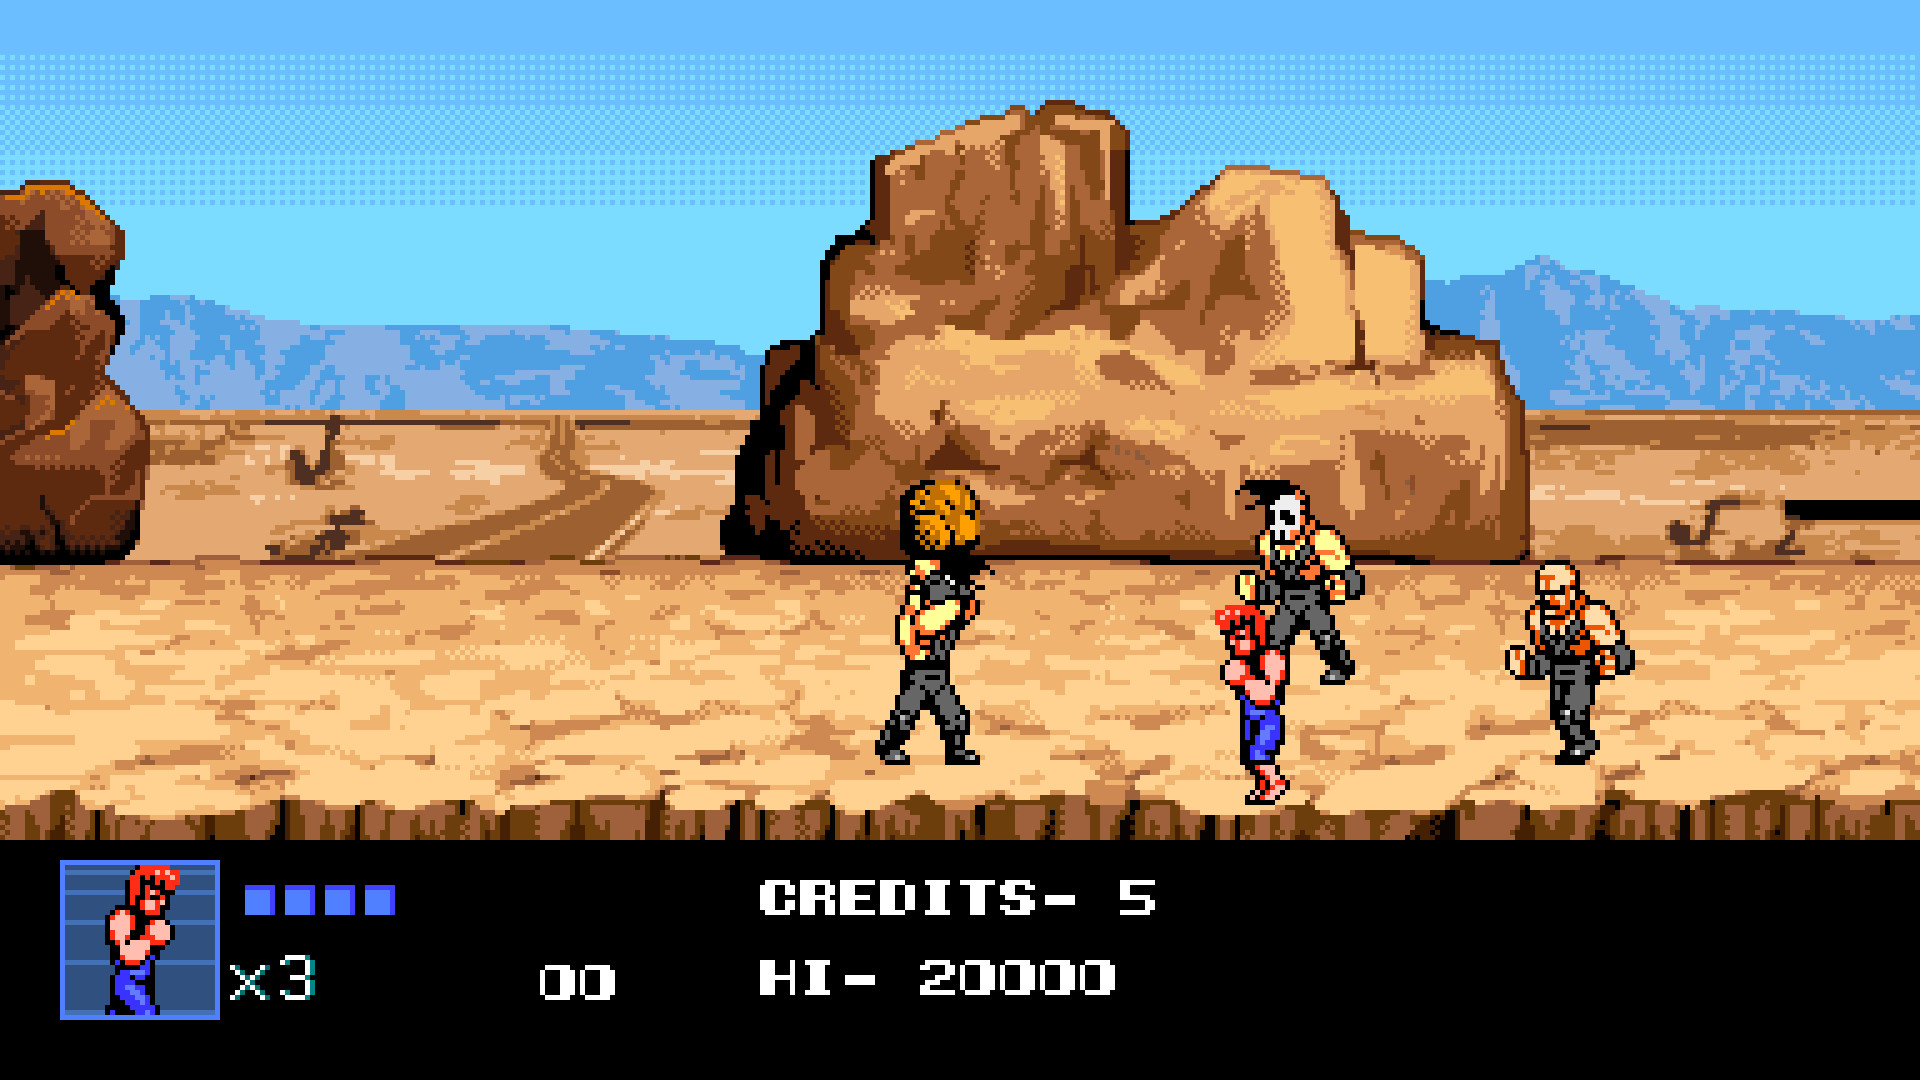 Res: 1920x1080, Double Dragon IV wallpapers HD   Double Dragon IV wallpapers HD   Pinterest    Dragons and Wallpaper